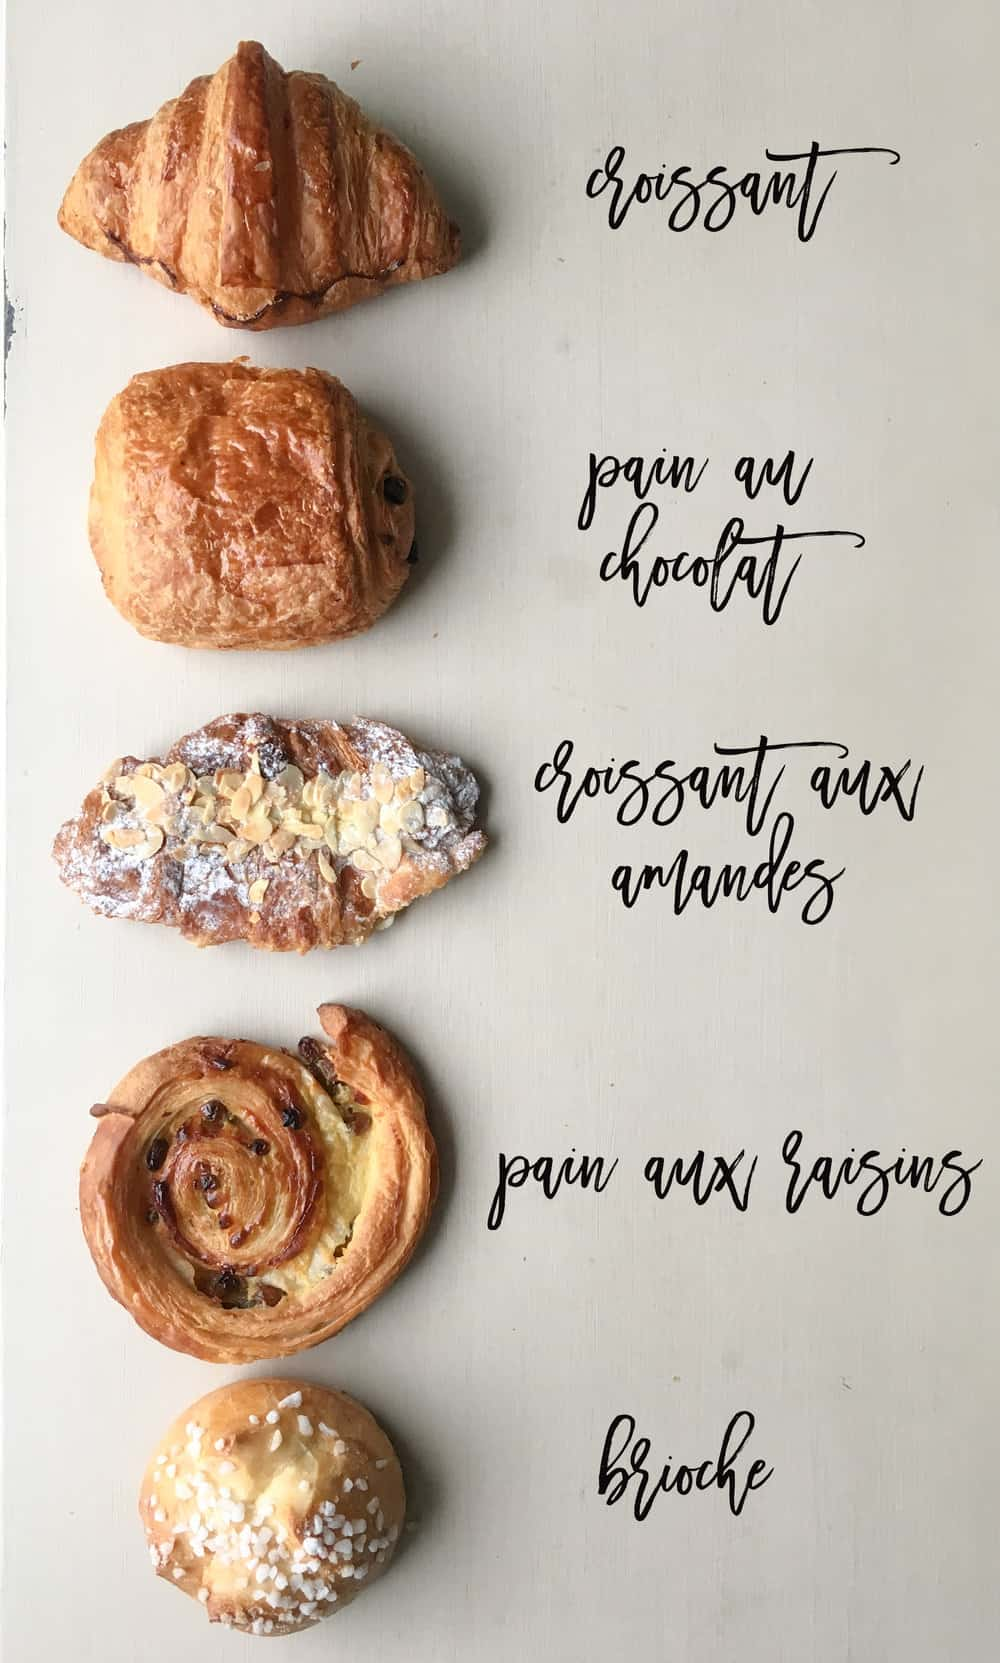 5+ways+to+order+a+pastry+in+French+from+Every+Day+Parisian++@rebeccaplotnick.jpg